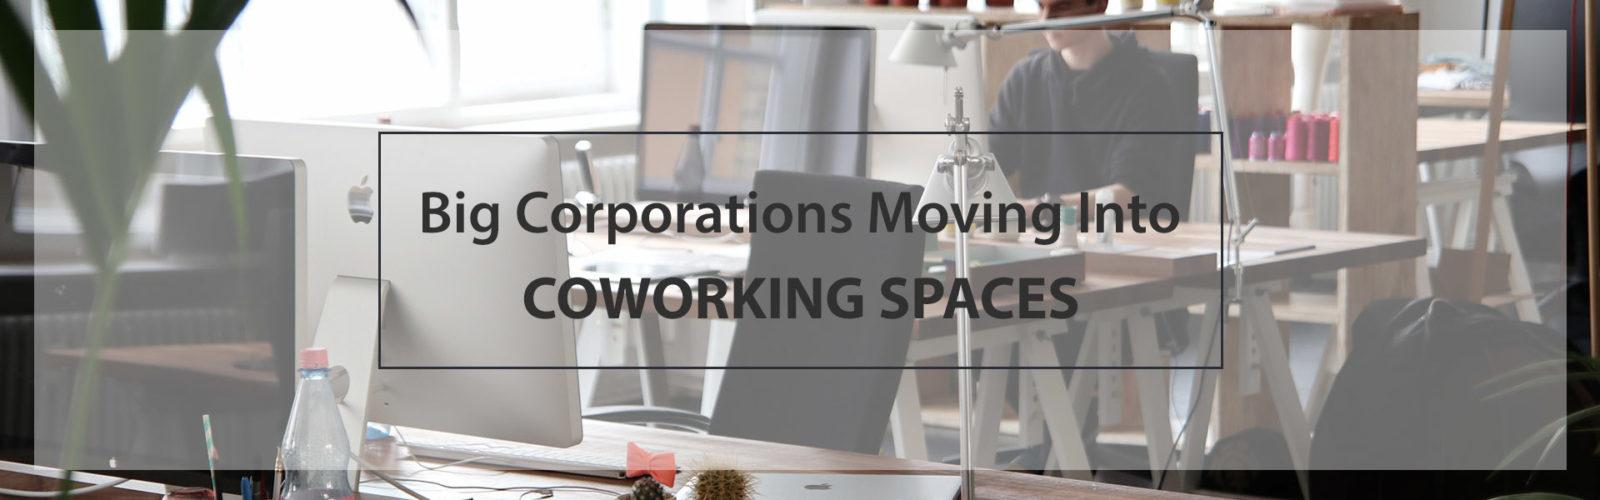 Why big corporations are moving into coworking spaces?